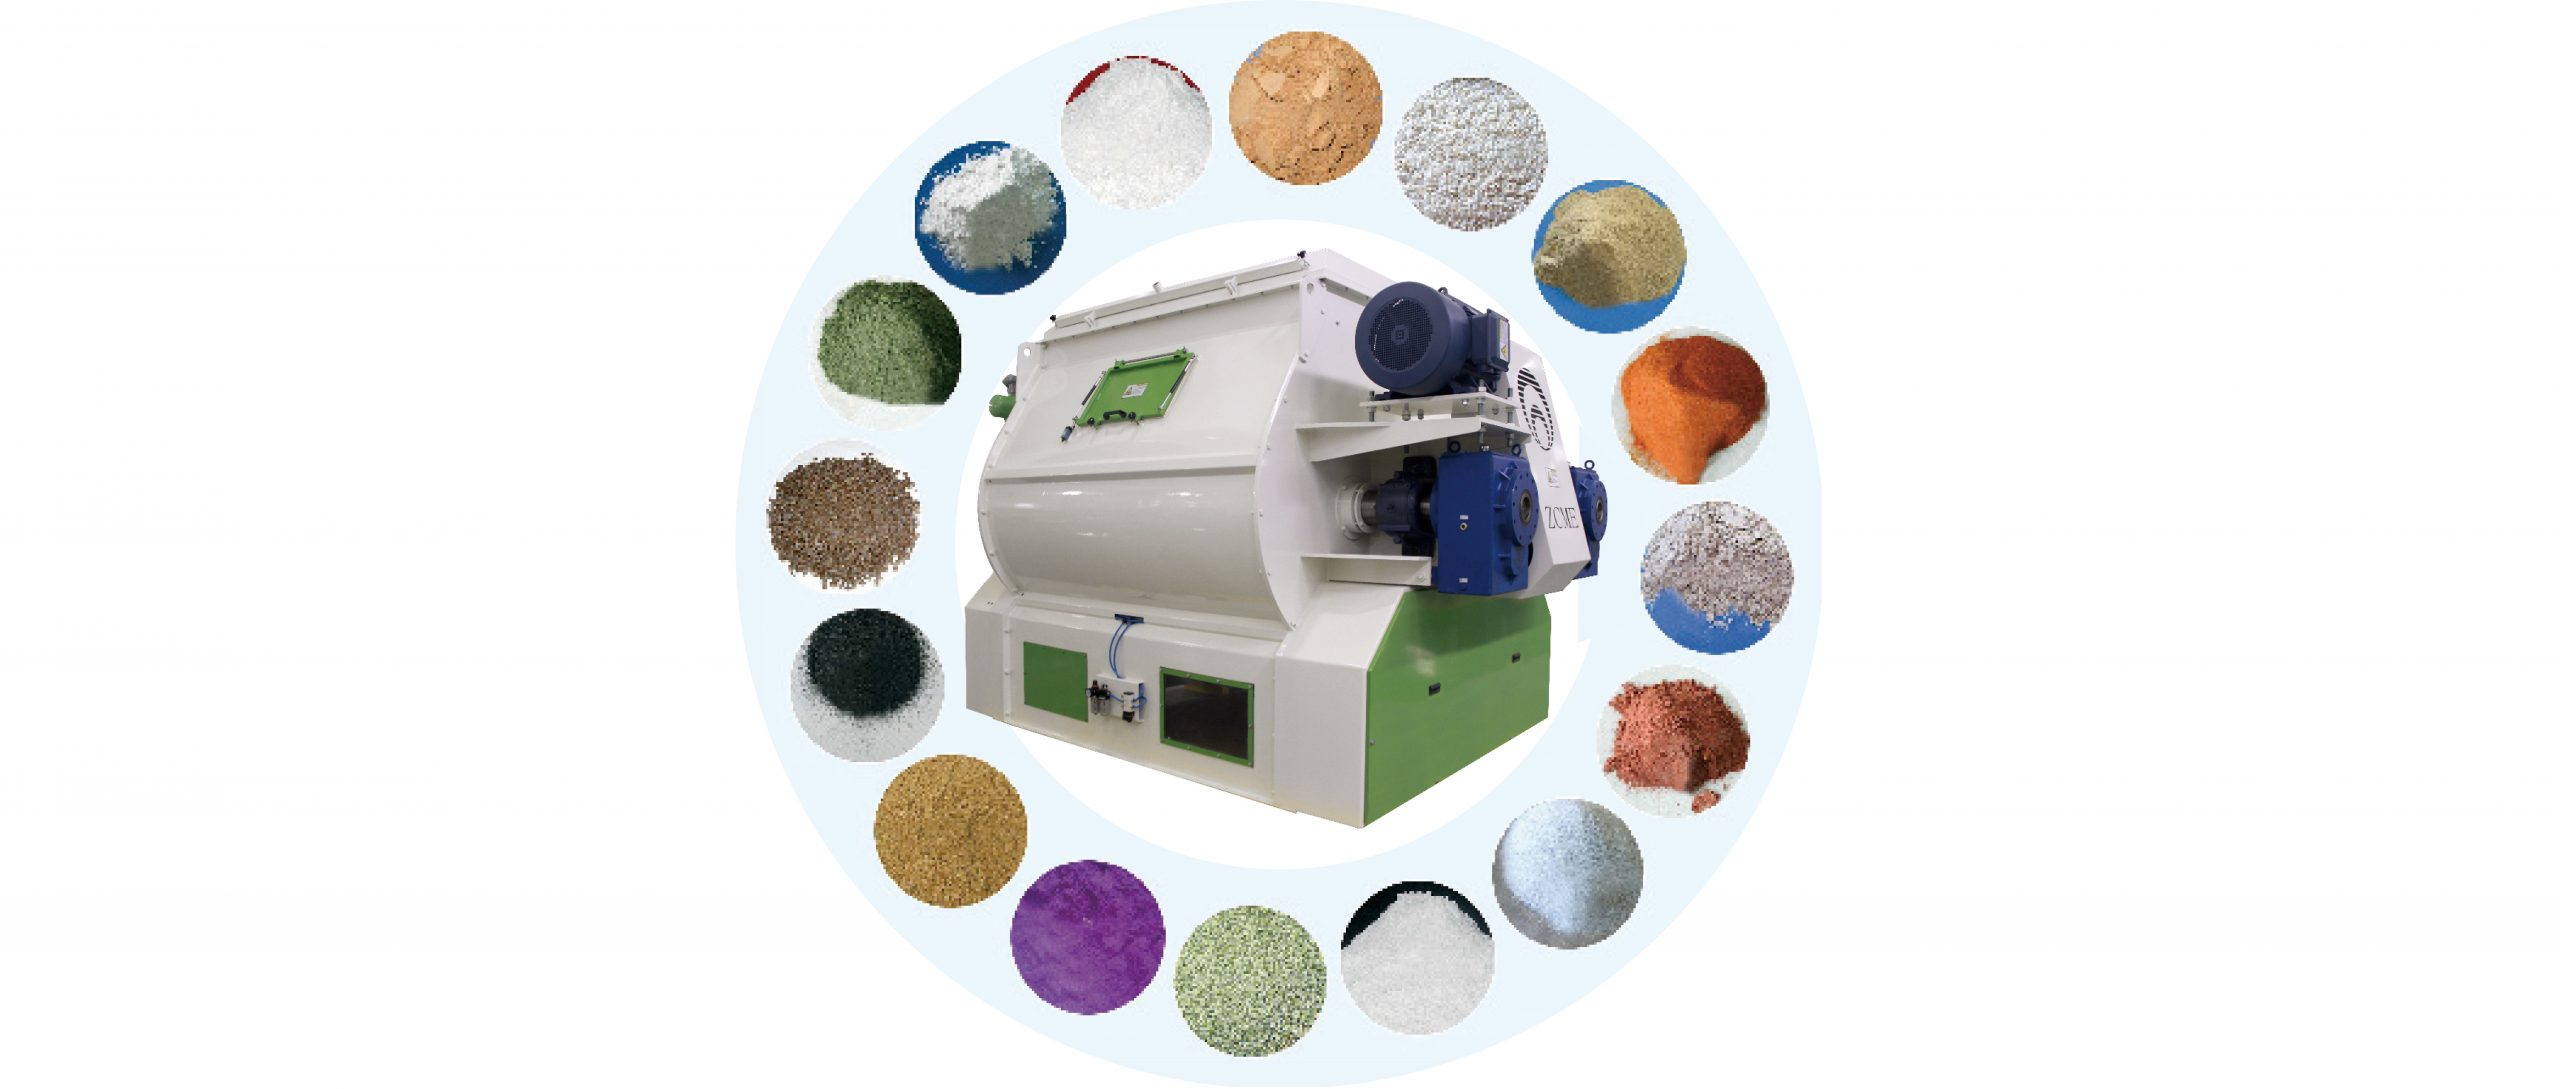 ZHENG CHANG Mixers Provide You with Ultra-high Mixing Uniformity